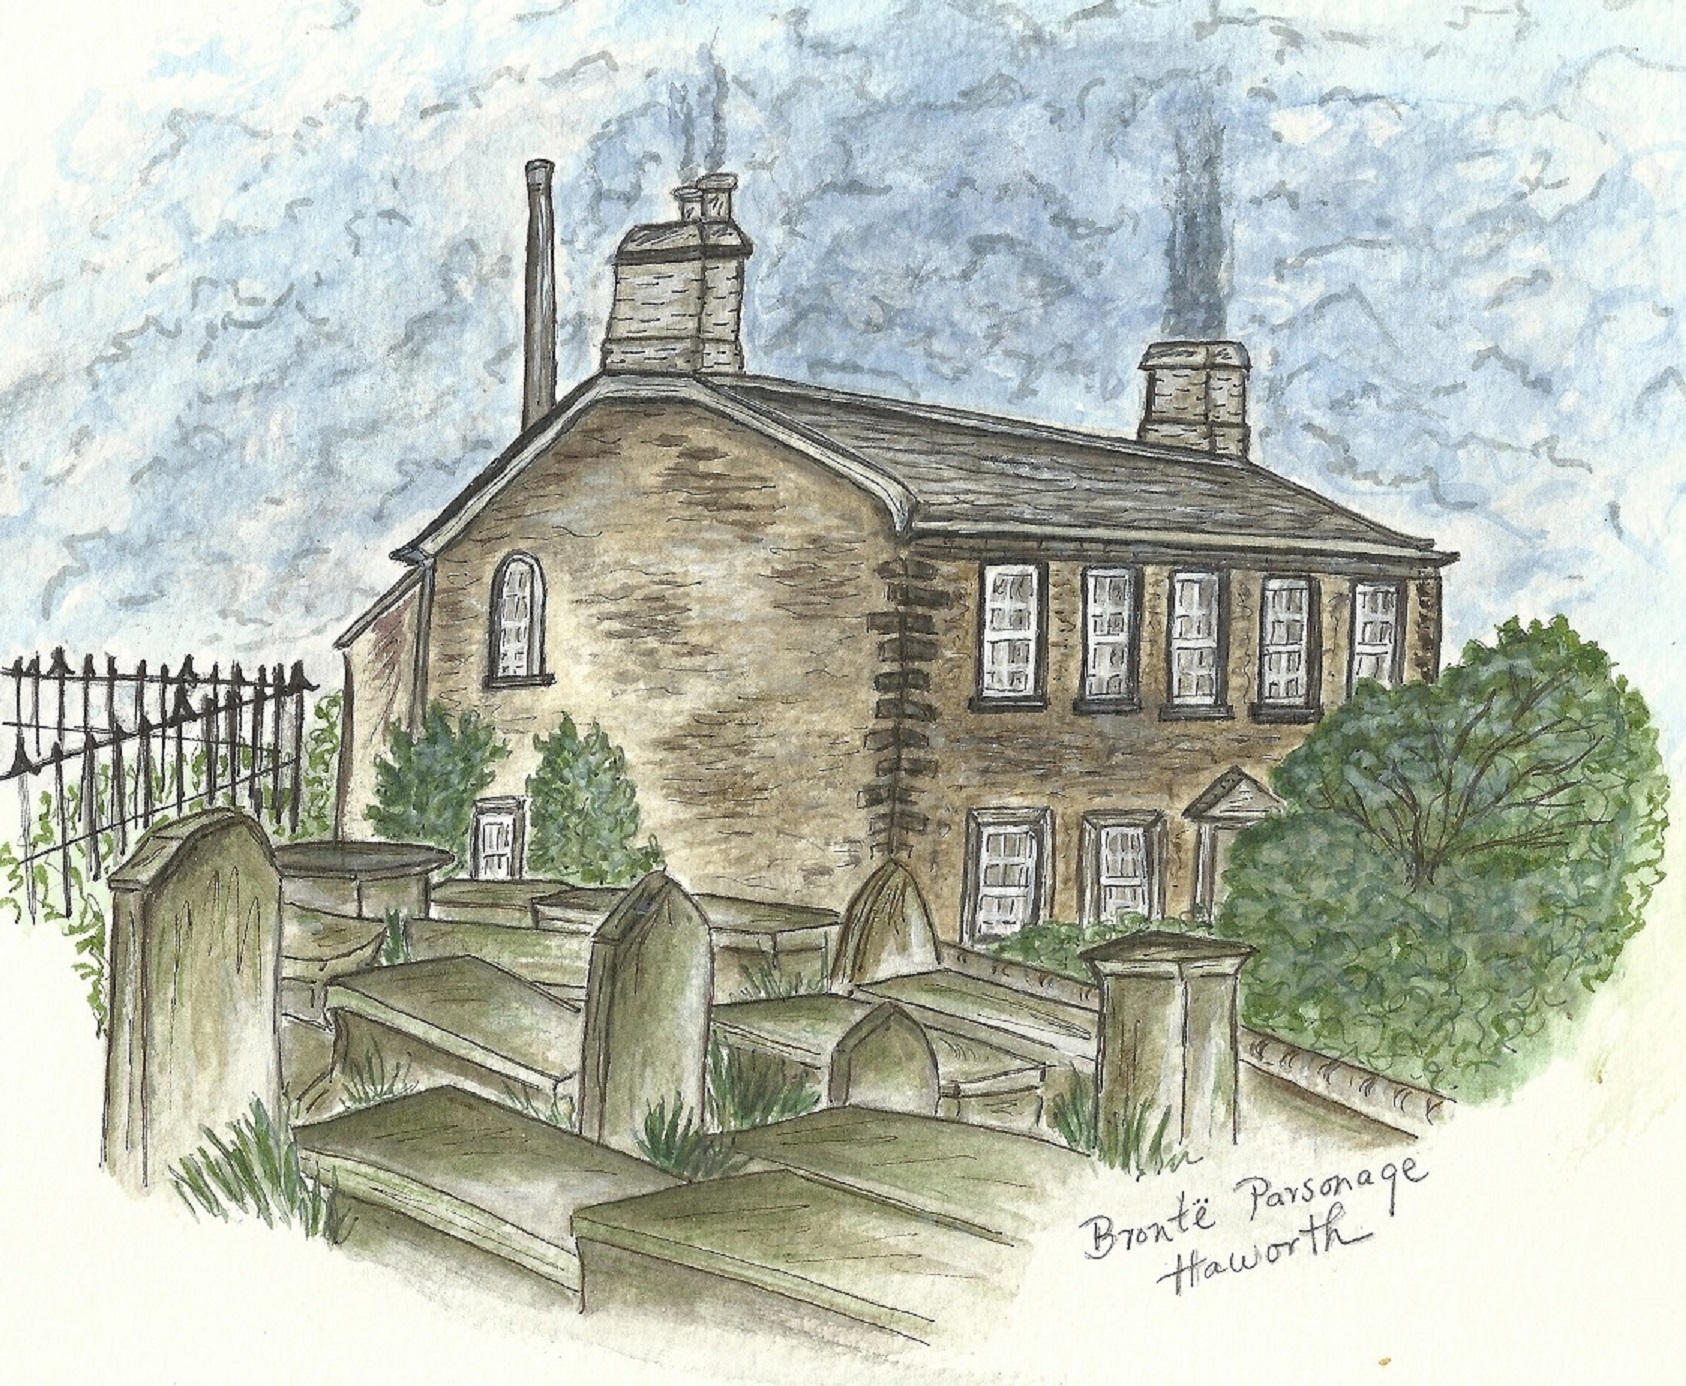 Bronte Parsonage Illustration.jpg adjusted